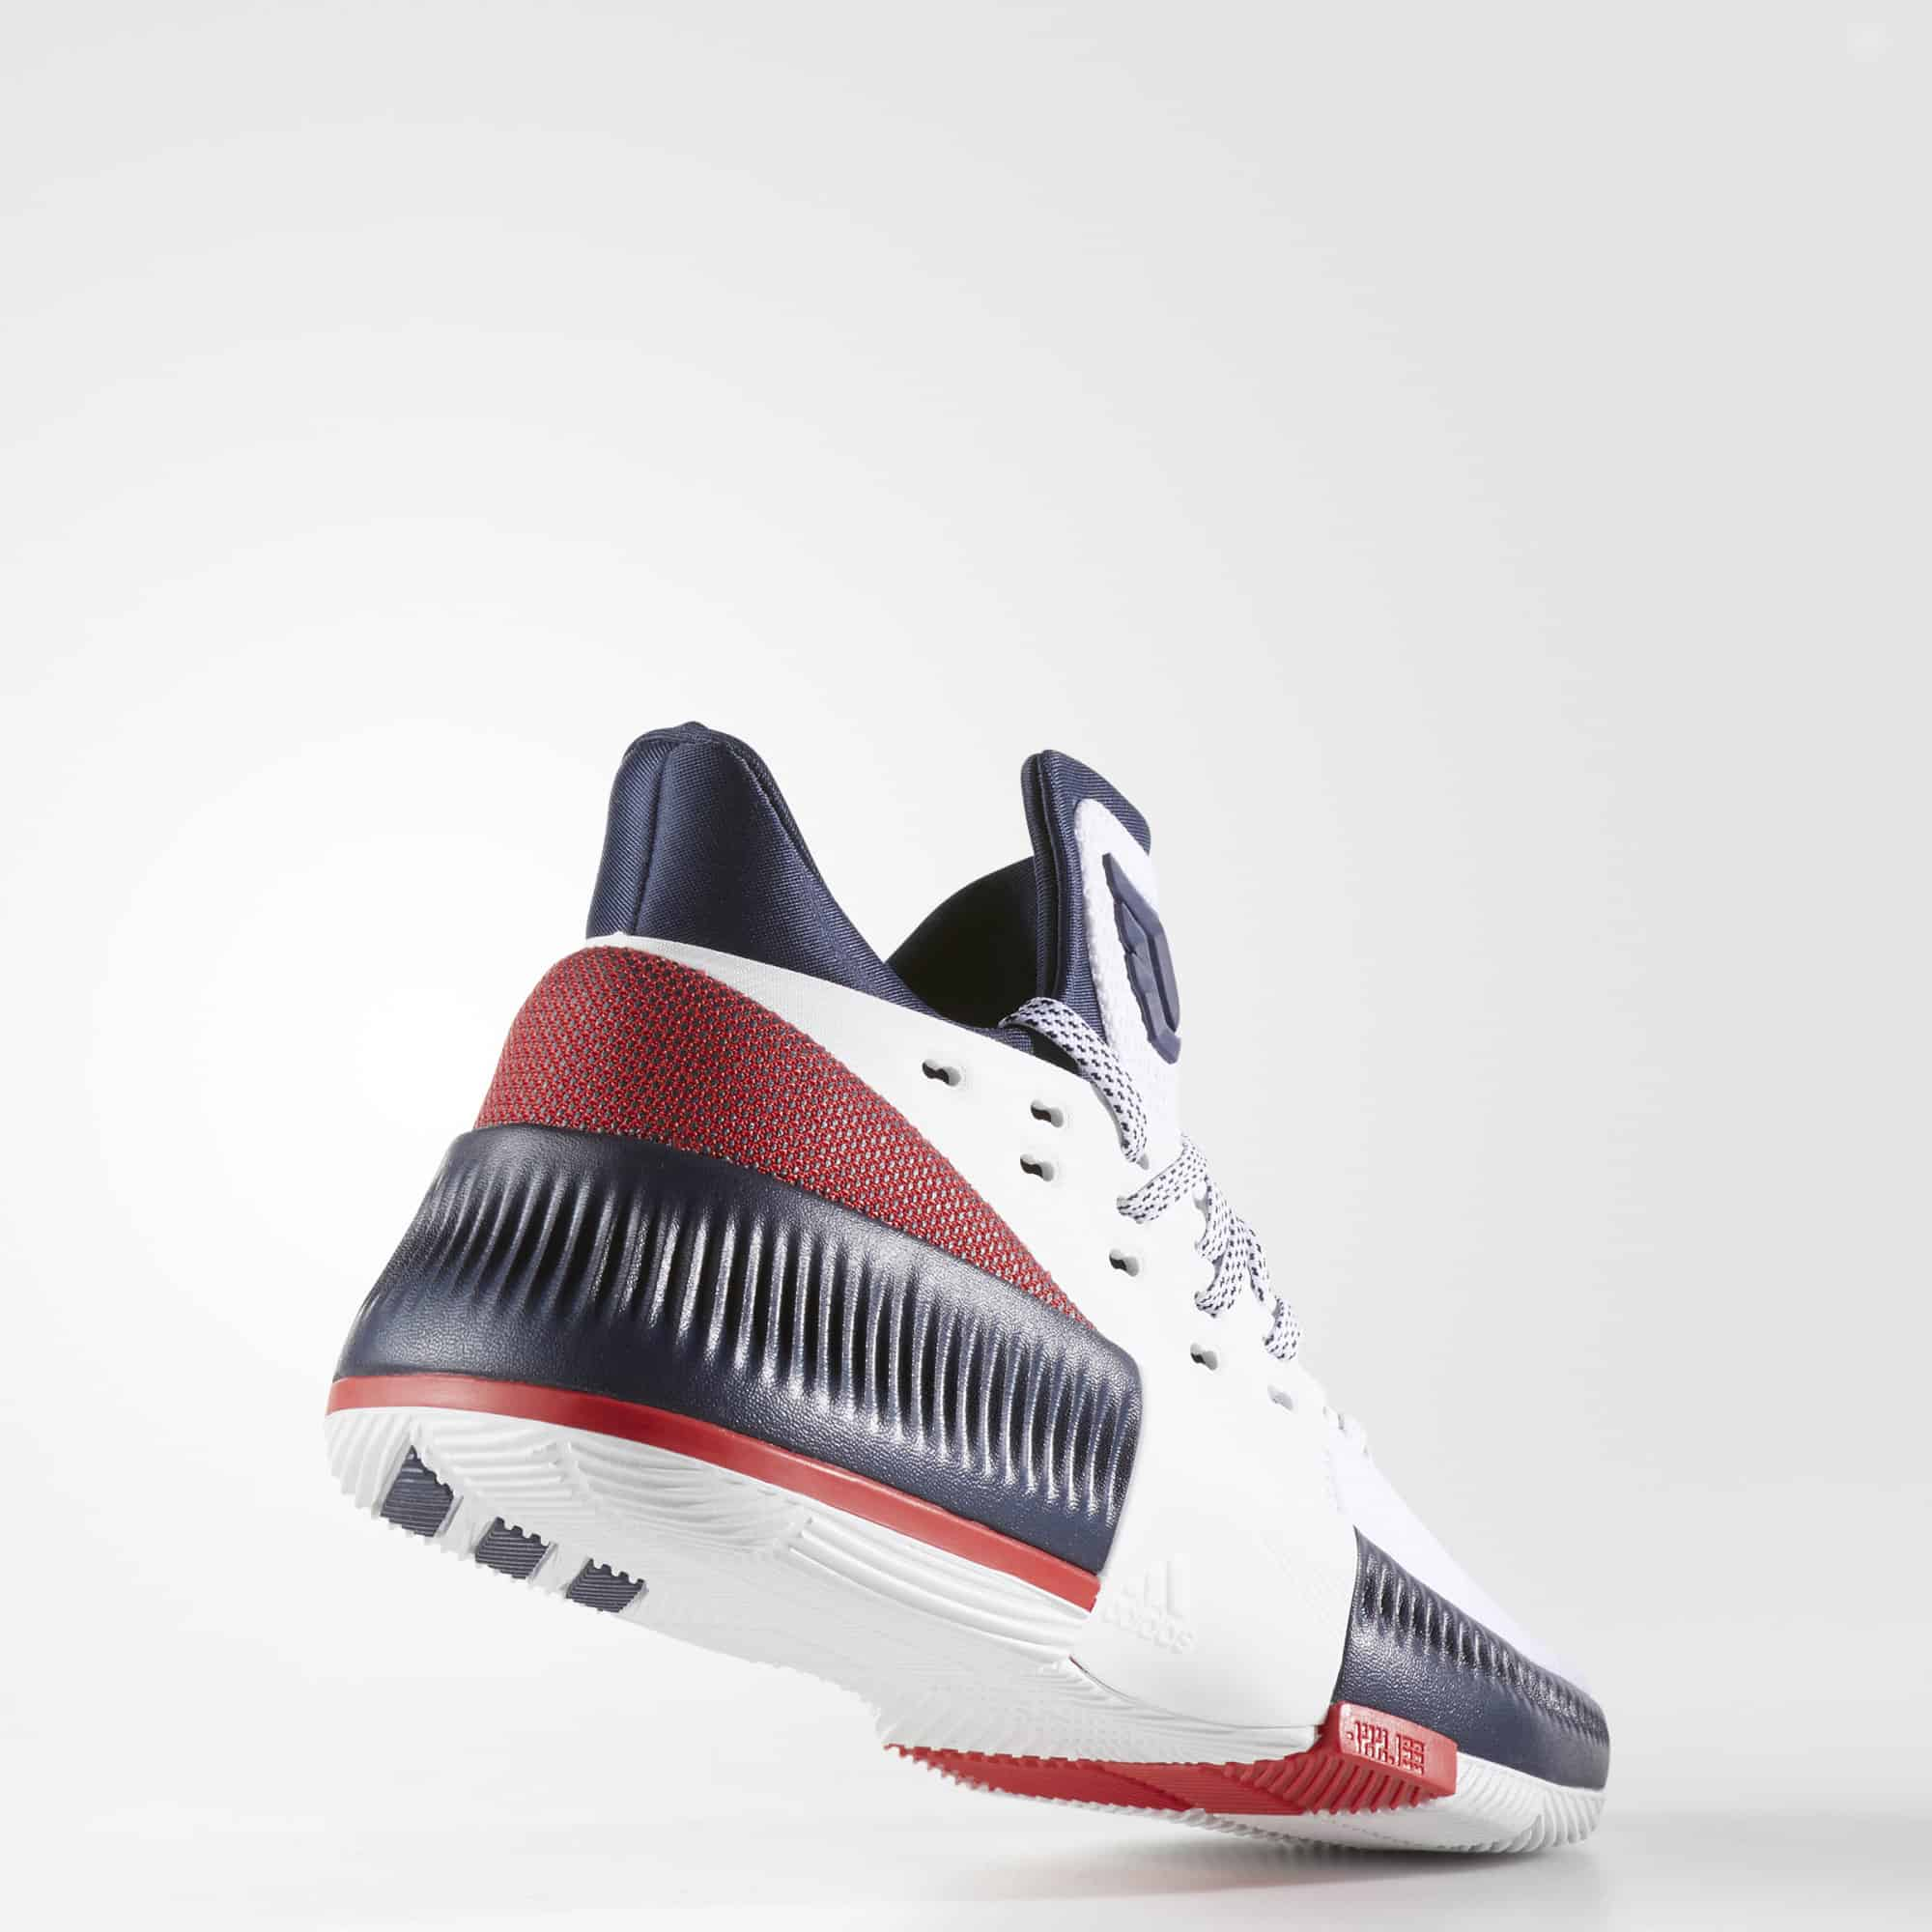 Adidas Dame 3 Review: Back